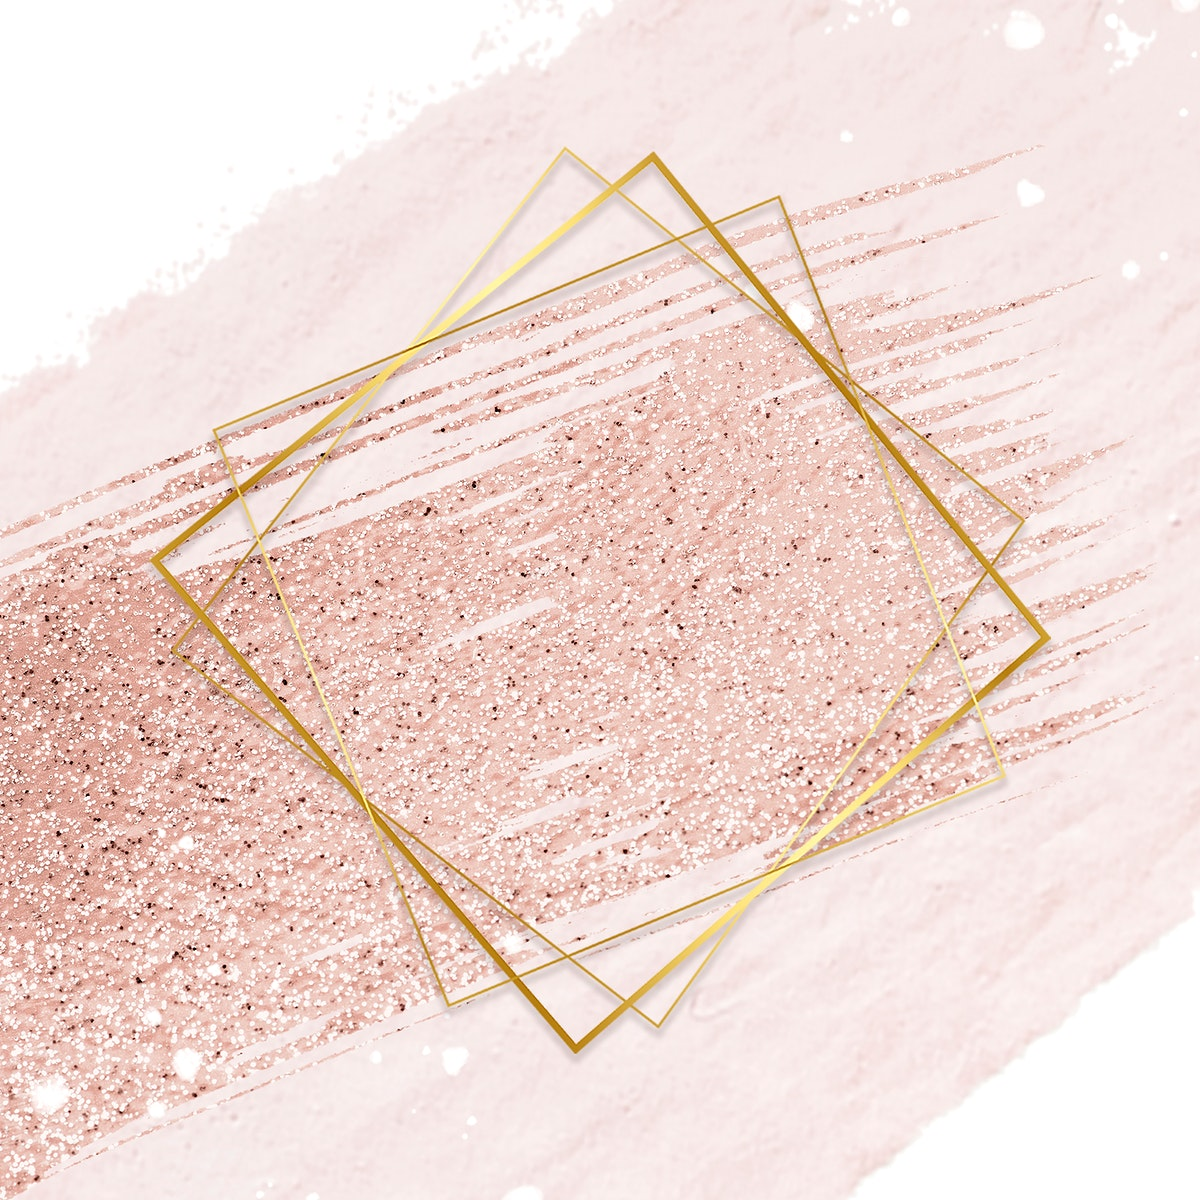 Gold rhombus frame on a pastel pink background